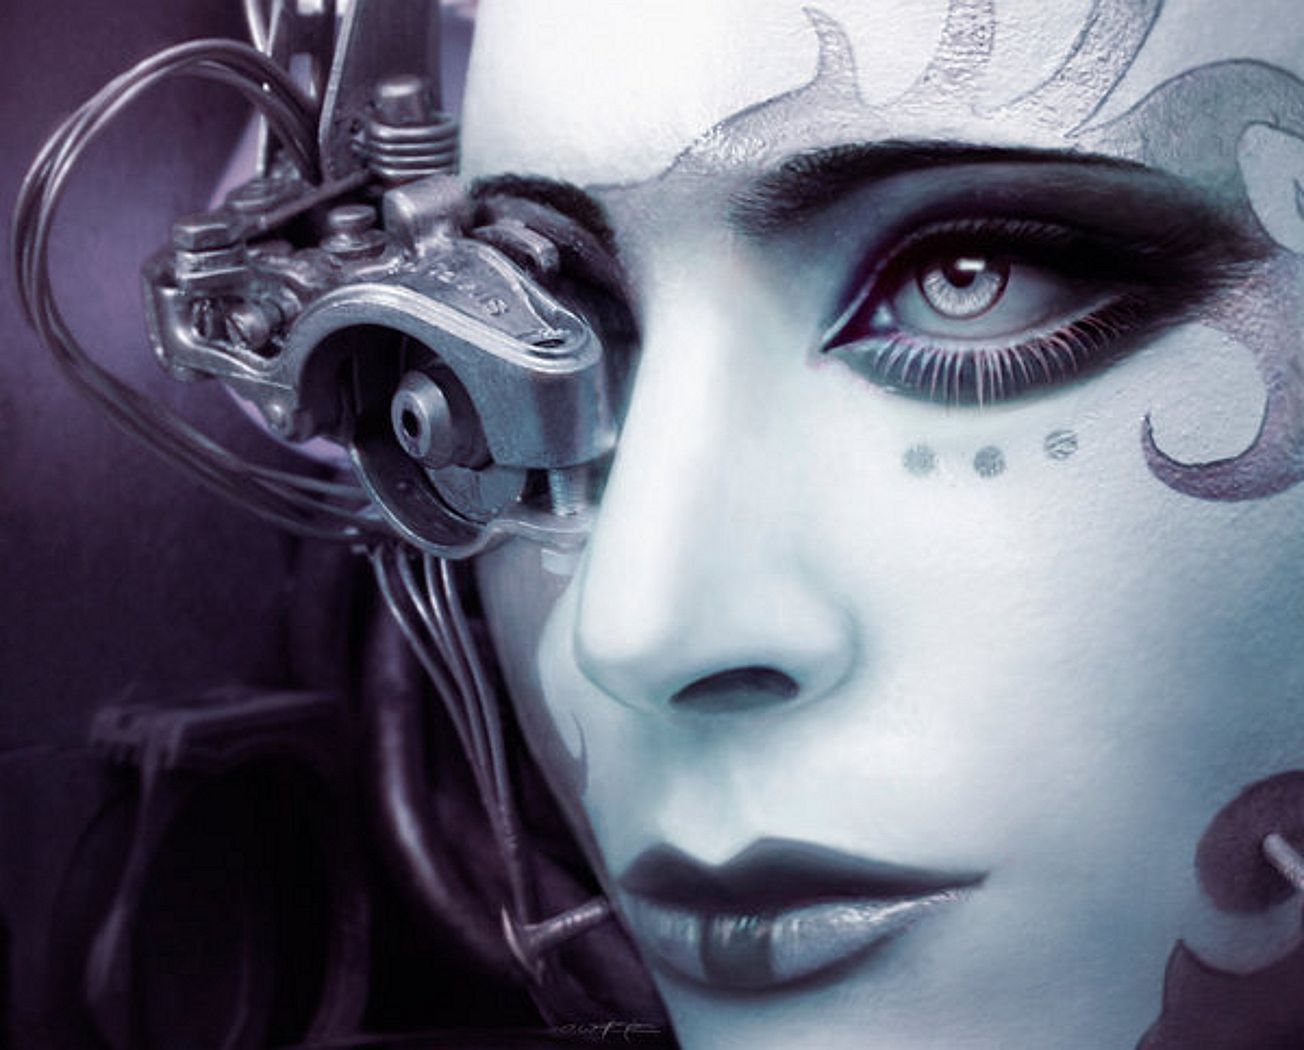 cyborg woman | cyborg girl 1304x1050 1304x1050px wallpapers #cyborg